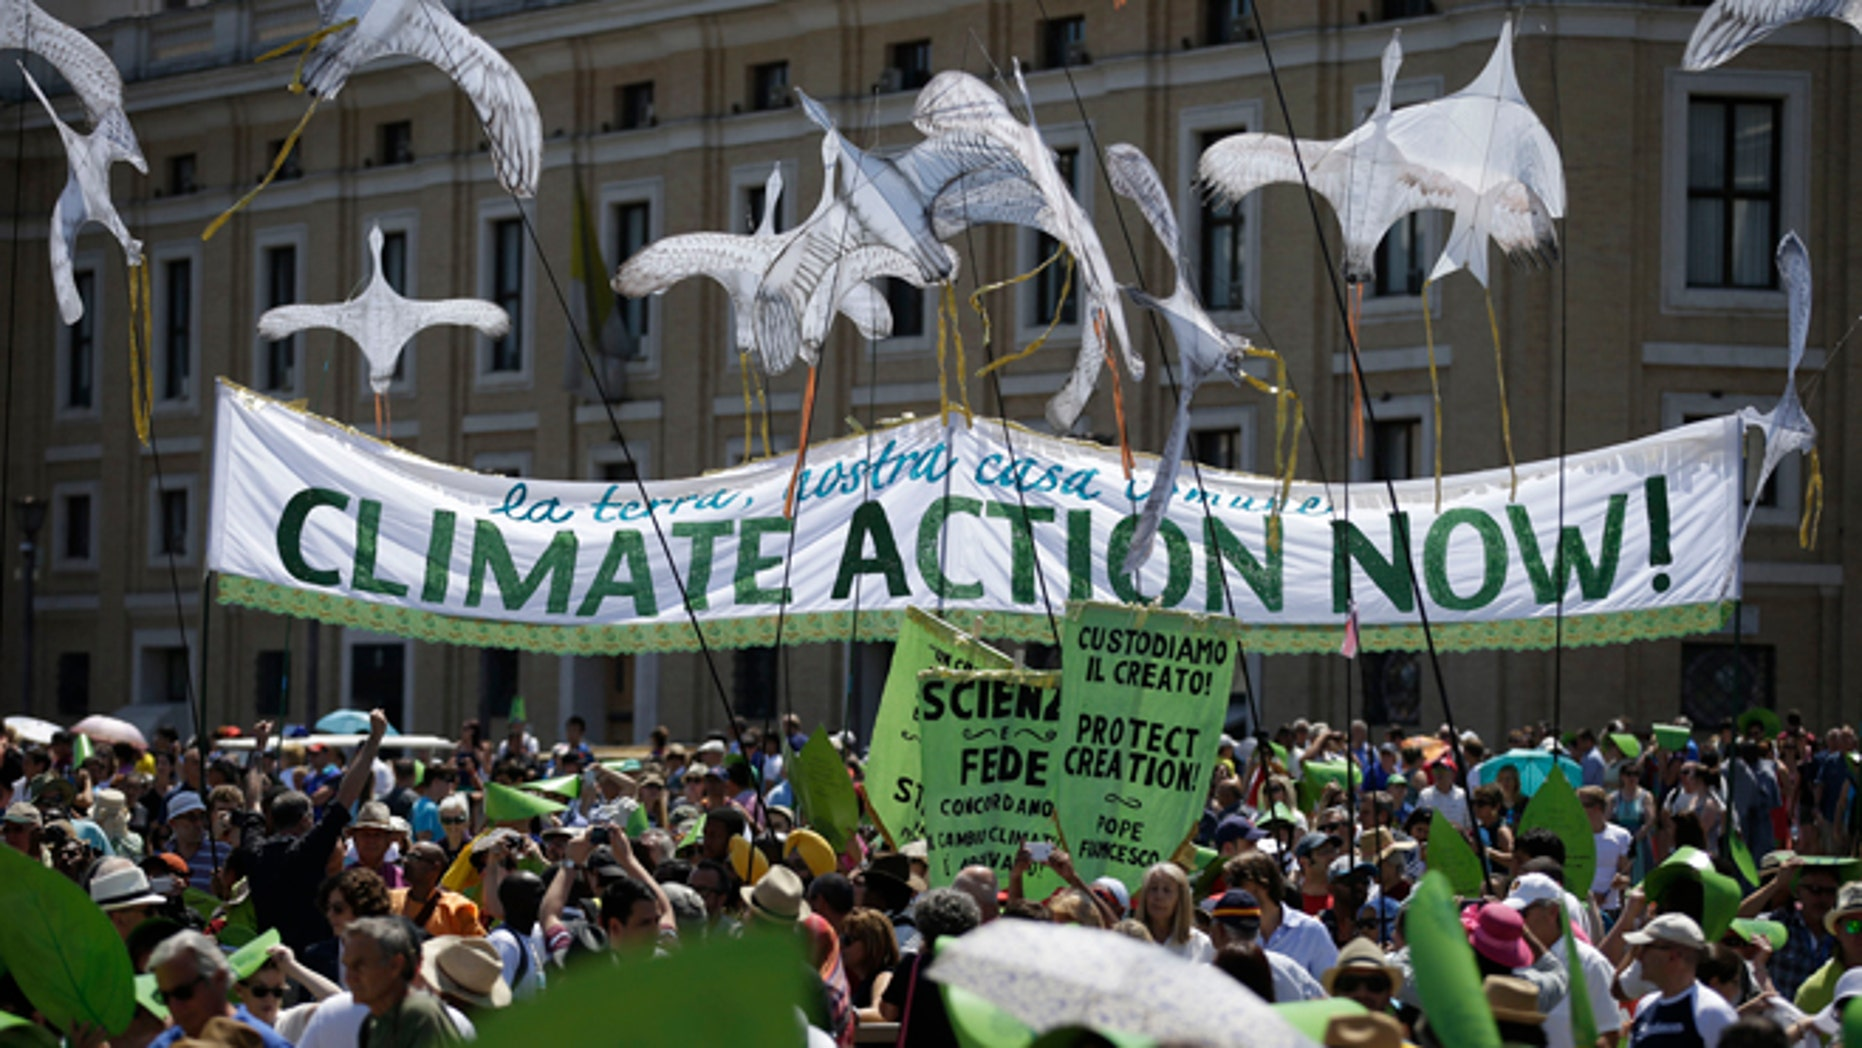 """People hold a banner reading ' Climate action Now ' in St. Peter's Square, at the Vatican, Sunday, June 28, 2015. Greeting people Sunday from his studio window, Francis praised a few hundred people who marched to St. Peter's Square under the banner """"one Earth, one family."""" Marchers included Christians, Muslims, Jews, Hindus and others. Their route began near the French embassy to remind people of a climate change conference in Paris later this year. (AP Photo/Andrew Medichini)"""